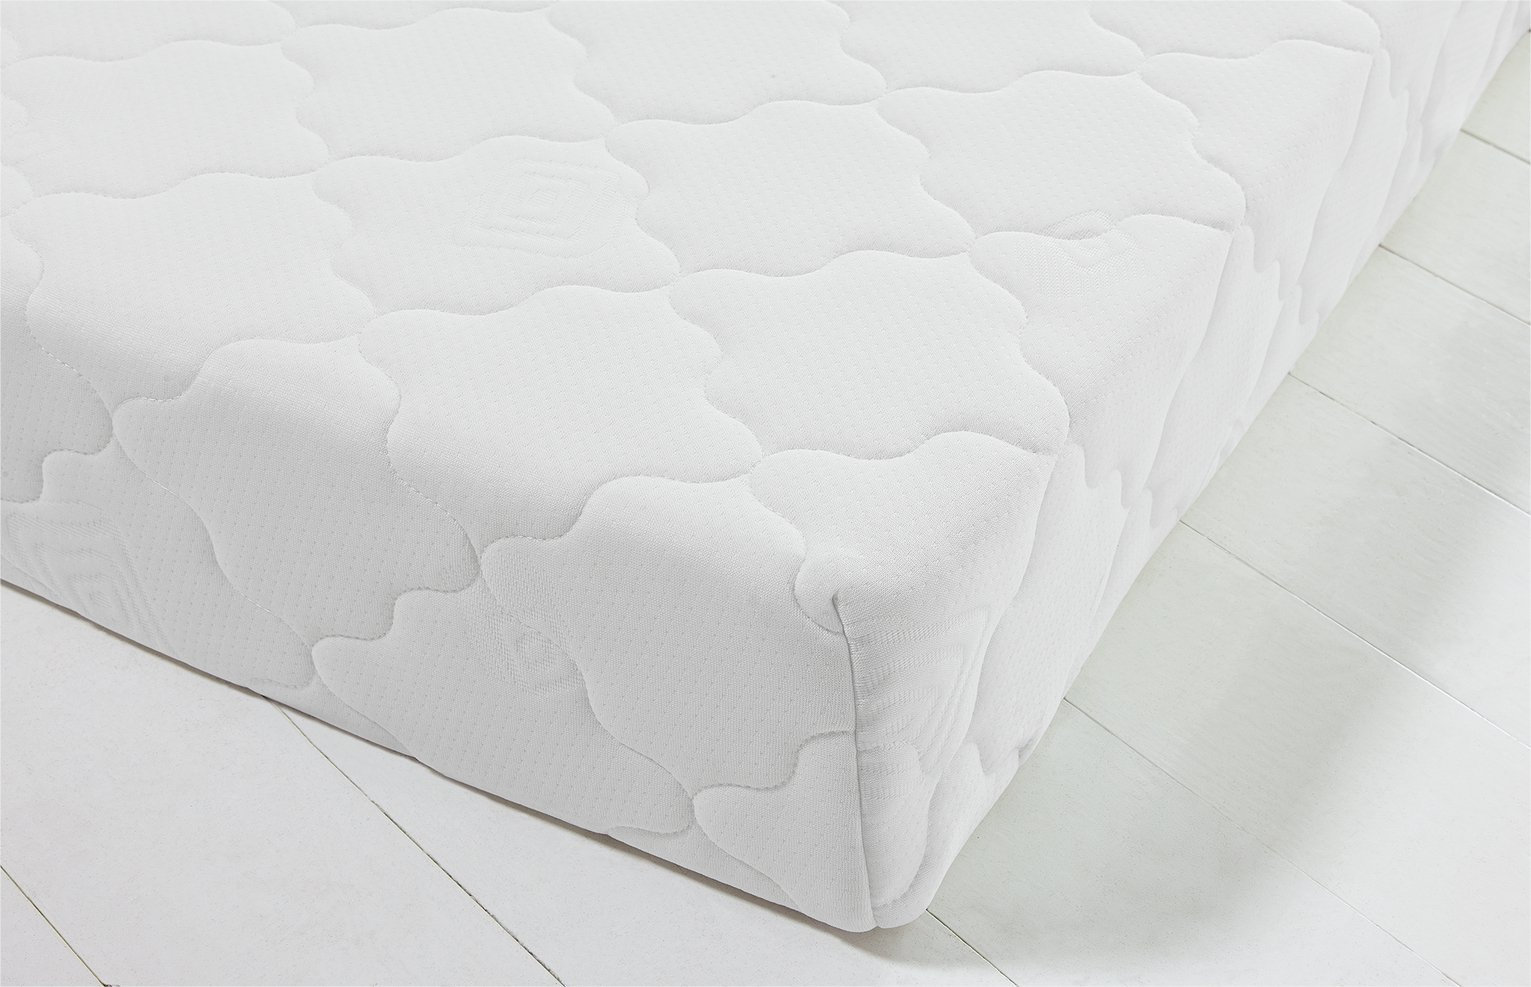 Image of I-Sleep Collect and Go Memory Foam Rolled Double Mattress